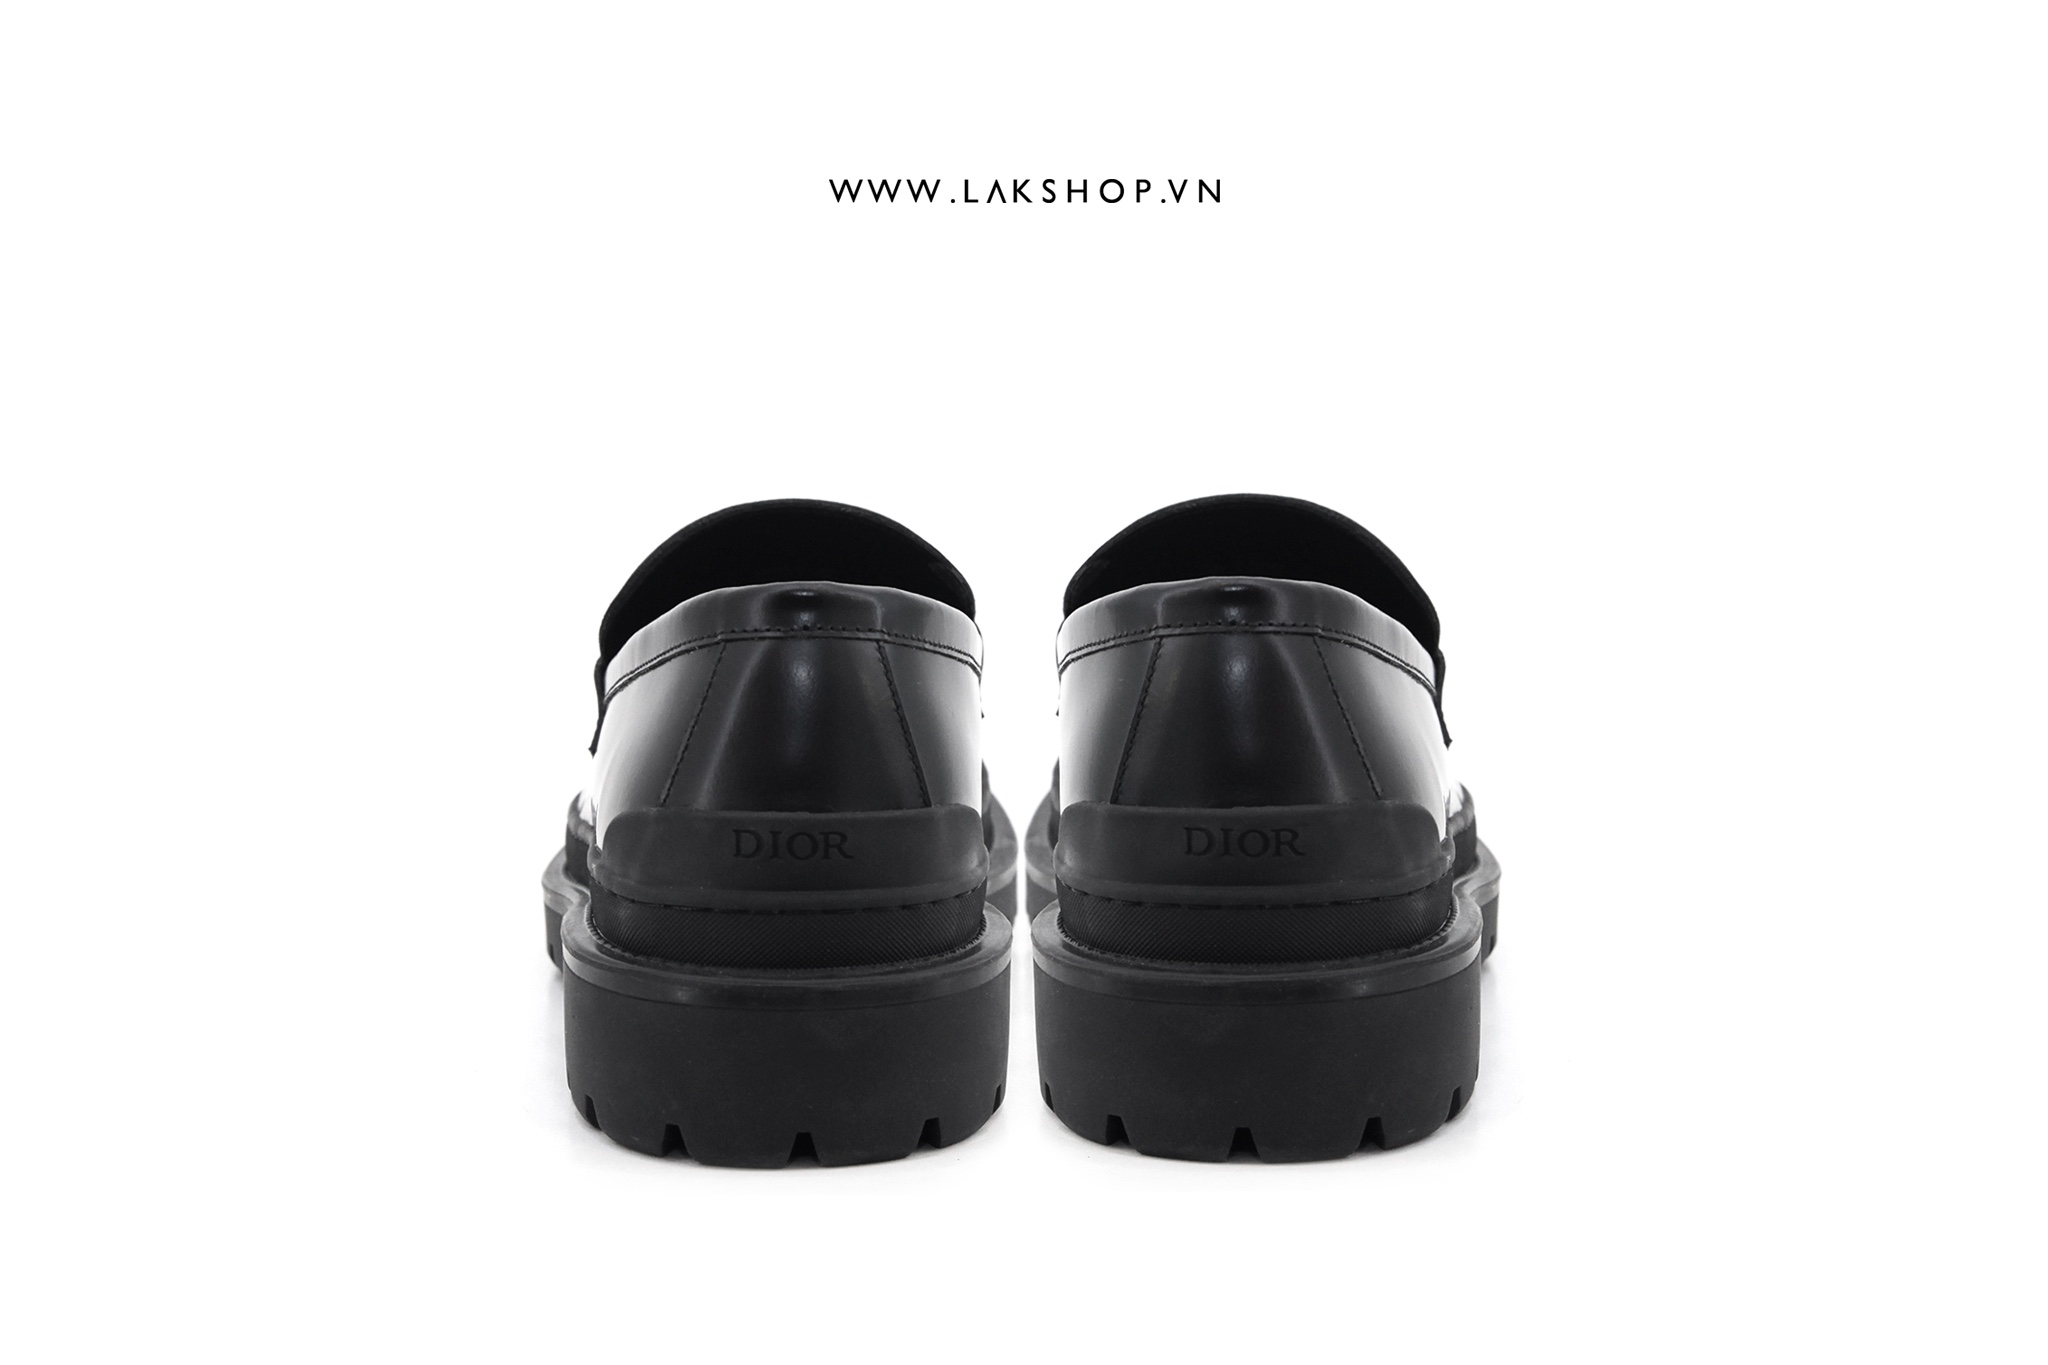 Dior Explorer Loafer with DIOR AND SHAWN Signature